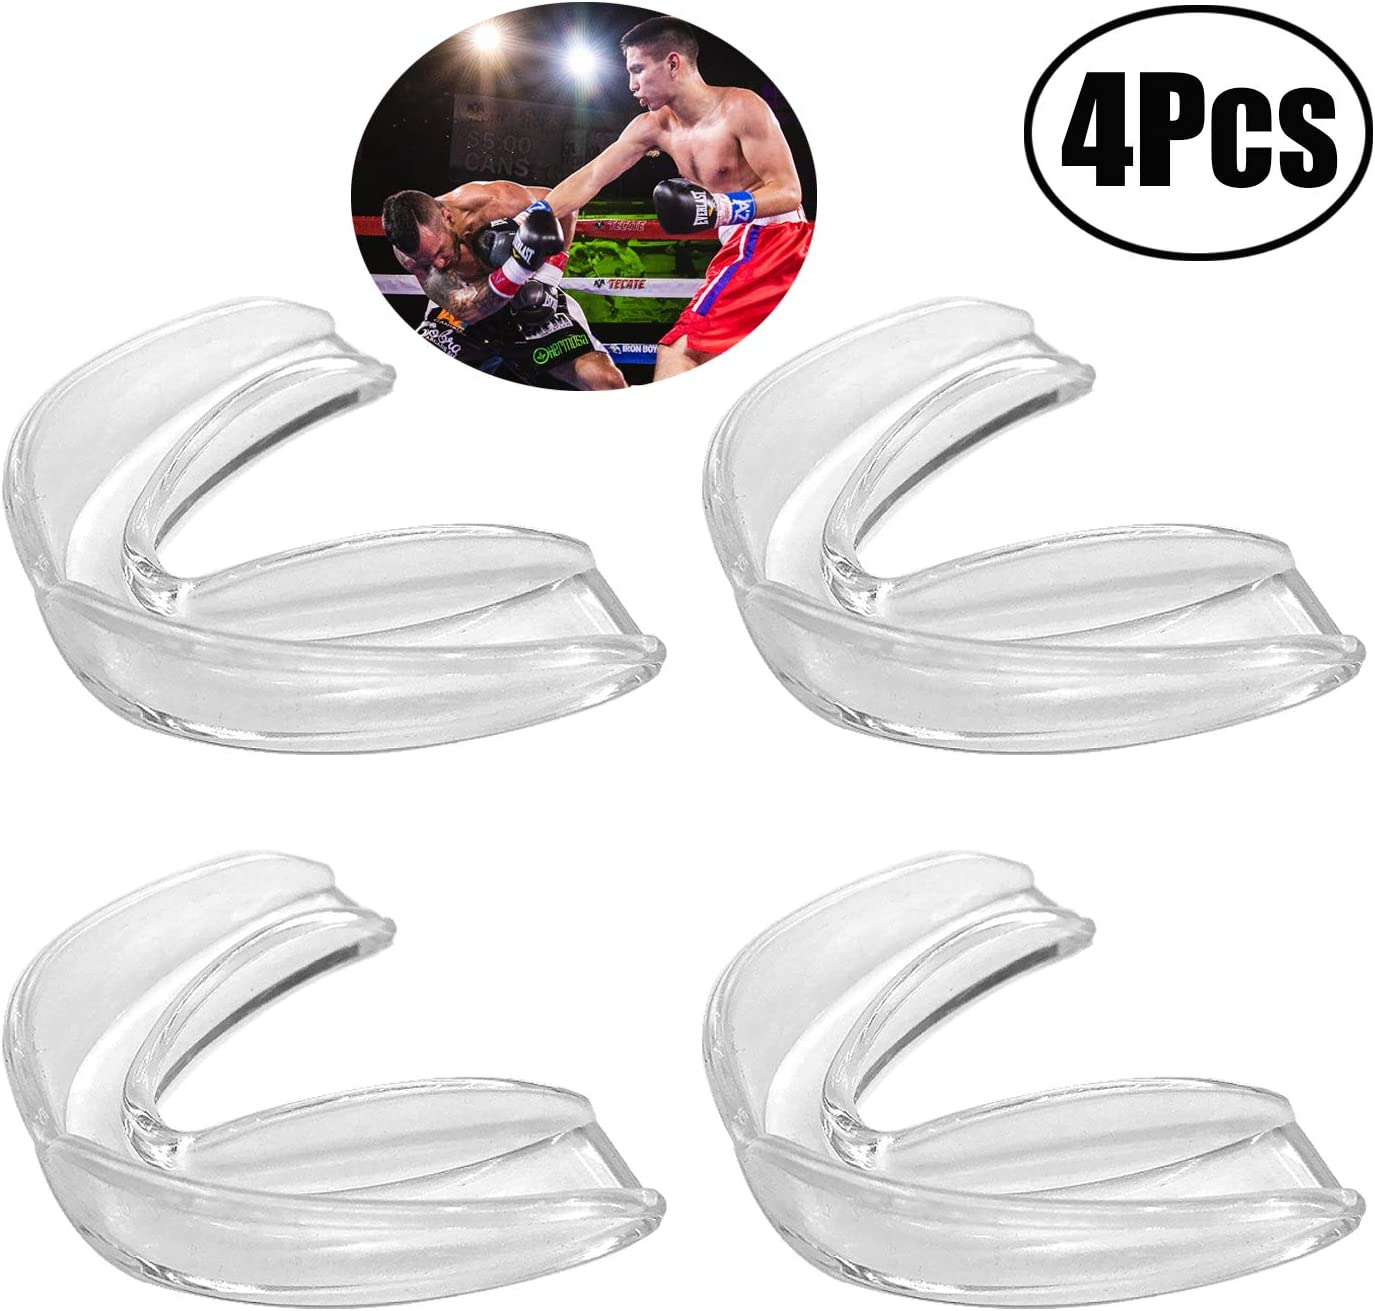 7cm LuLyL 4 Pack Athletic Mouth Guards Gum Shield for Sports Teeth Guard Youth Mouthguard with Plastic Box for Kids//Adults Rugby Boxing Hockey MMA Karate Martial Arts 7